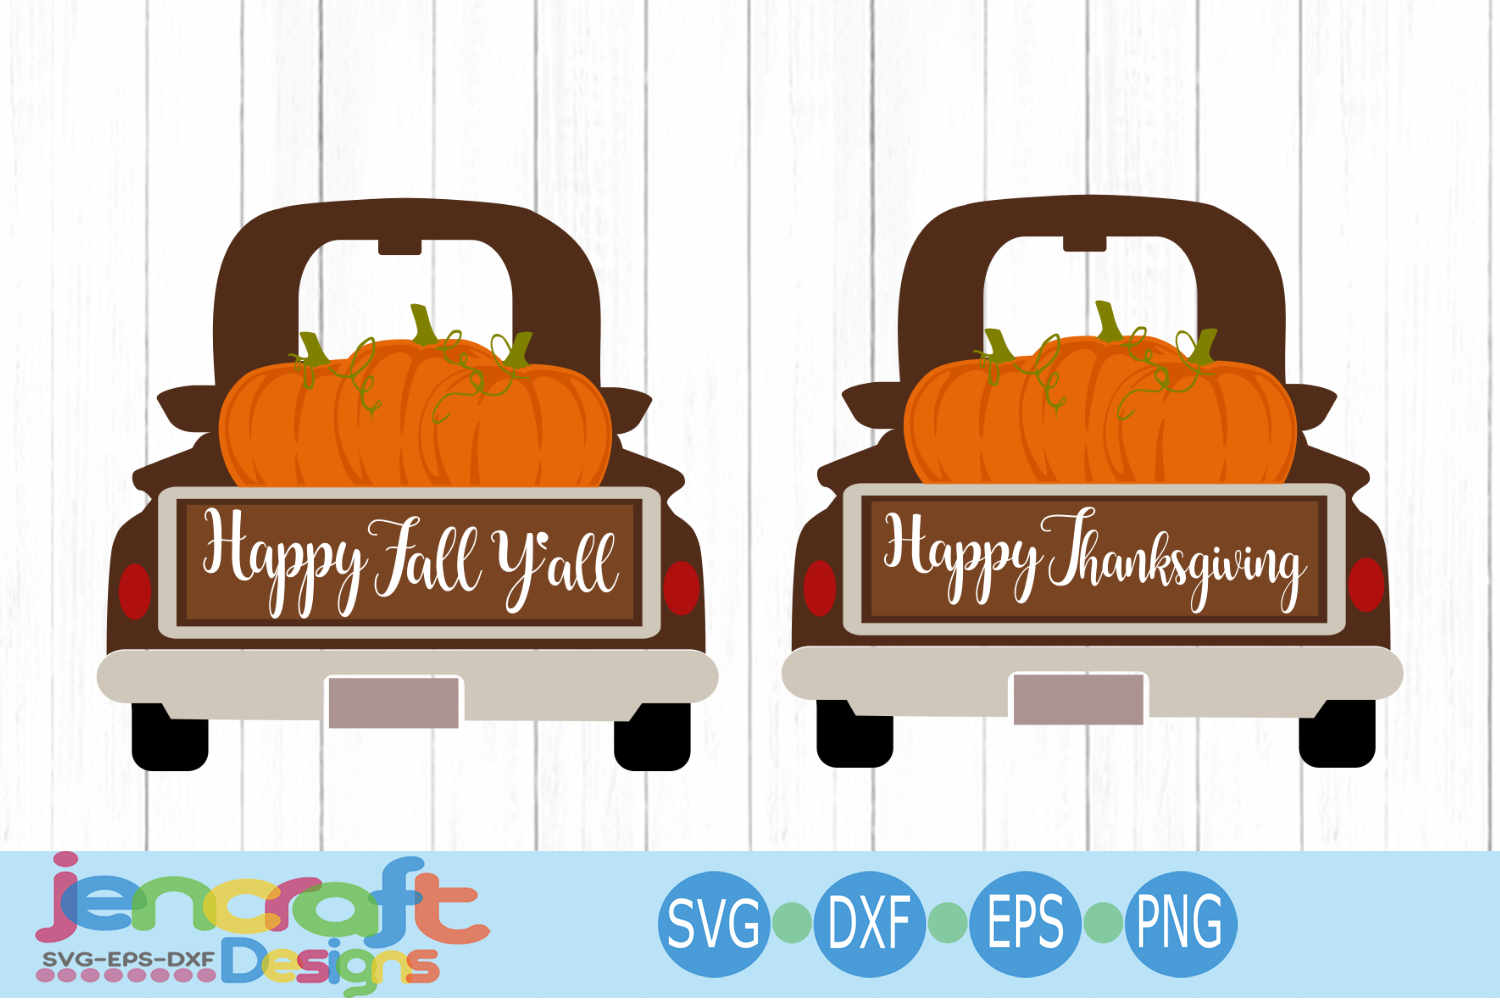 Vintage Fall Pumpkin Red truck SVG Thanksgiving antique old example image 1